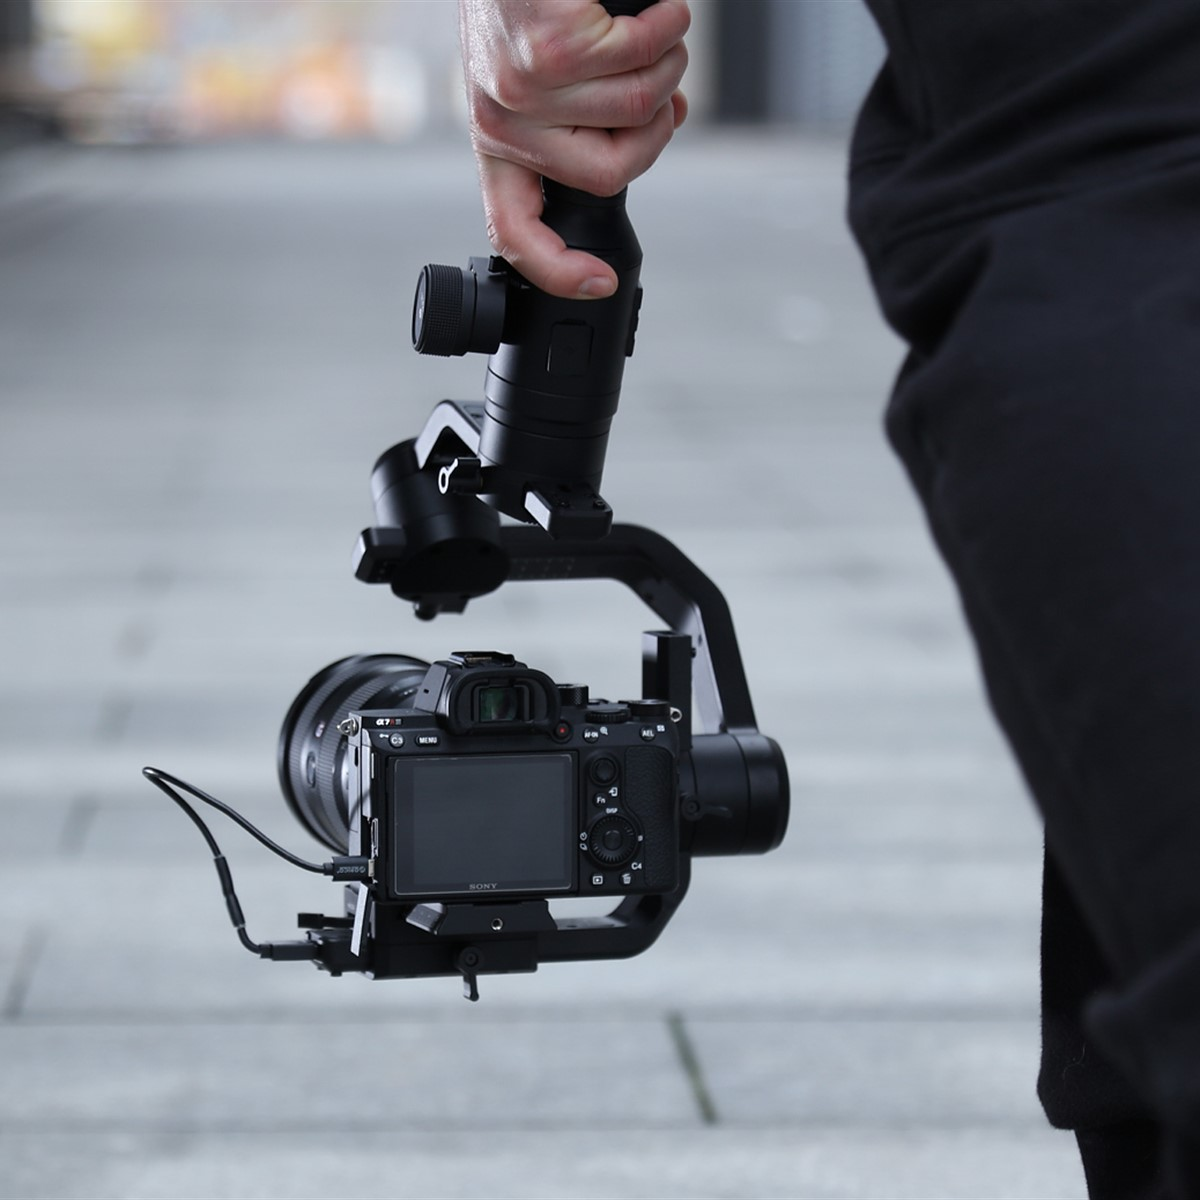 DJI announces price and delivery date for Ronin-S gimbal: Digital  Photography Review